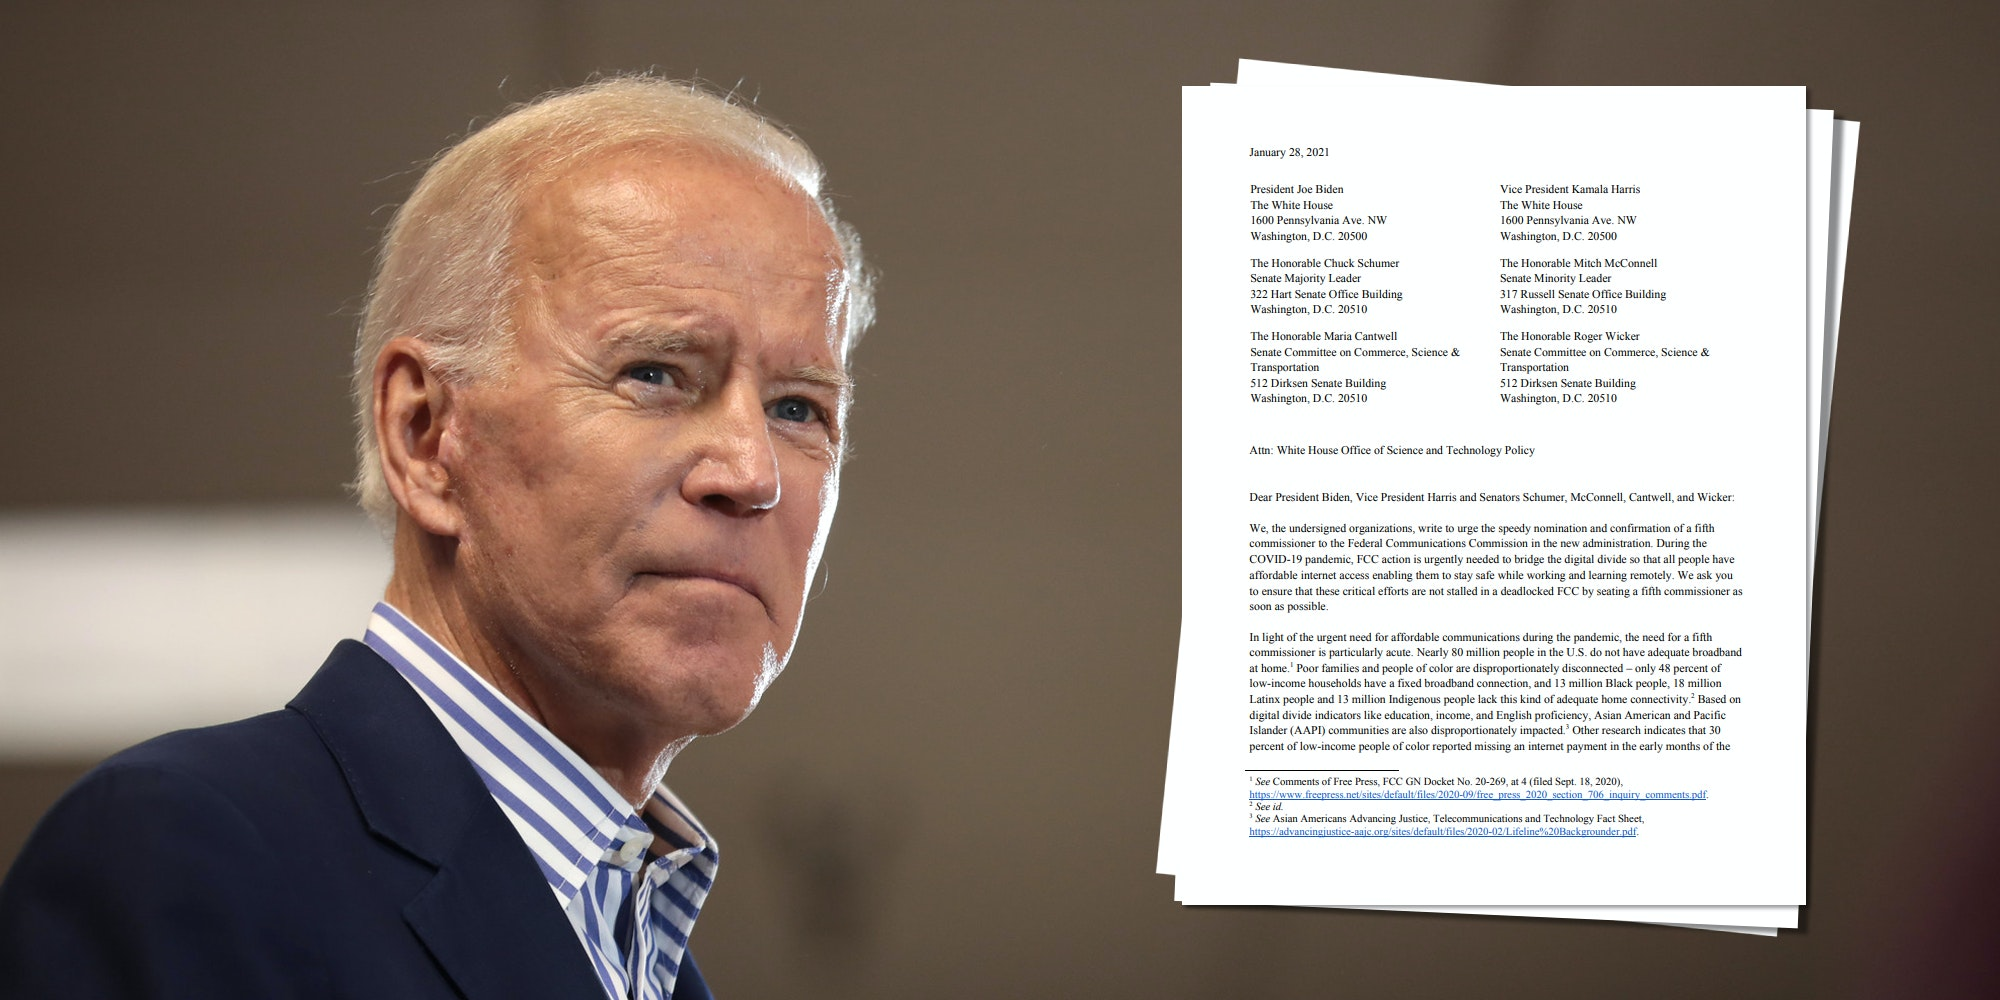 Joe Biden next to a letter urging him and Congress to quickly confirm the fifth member of the FCC.